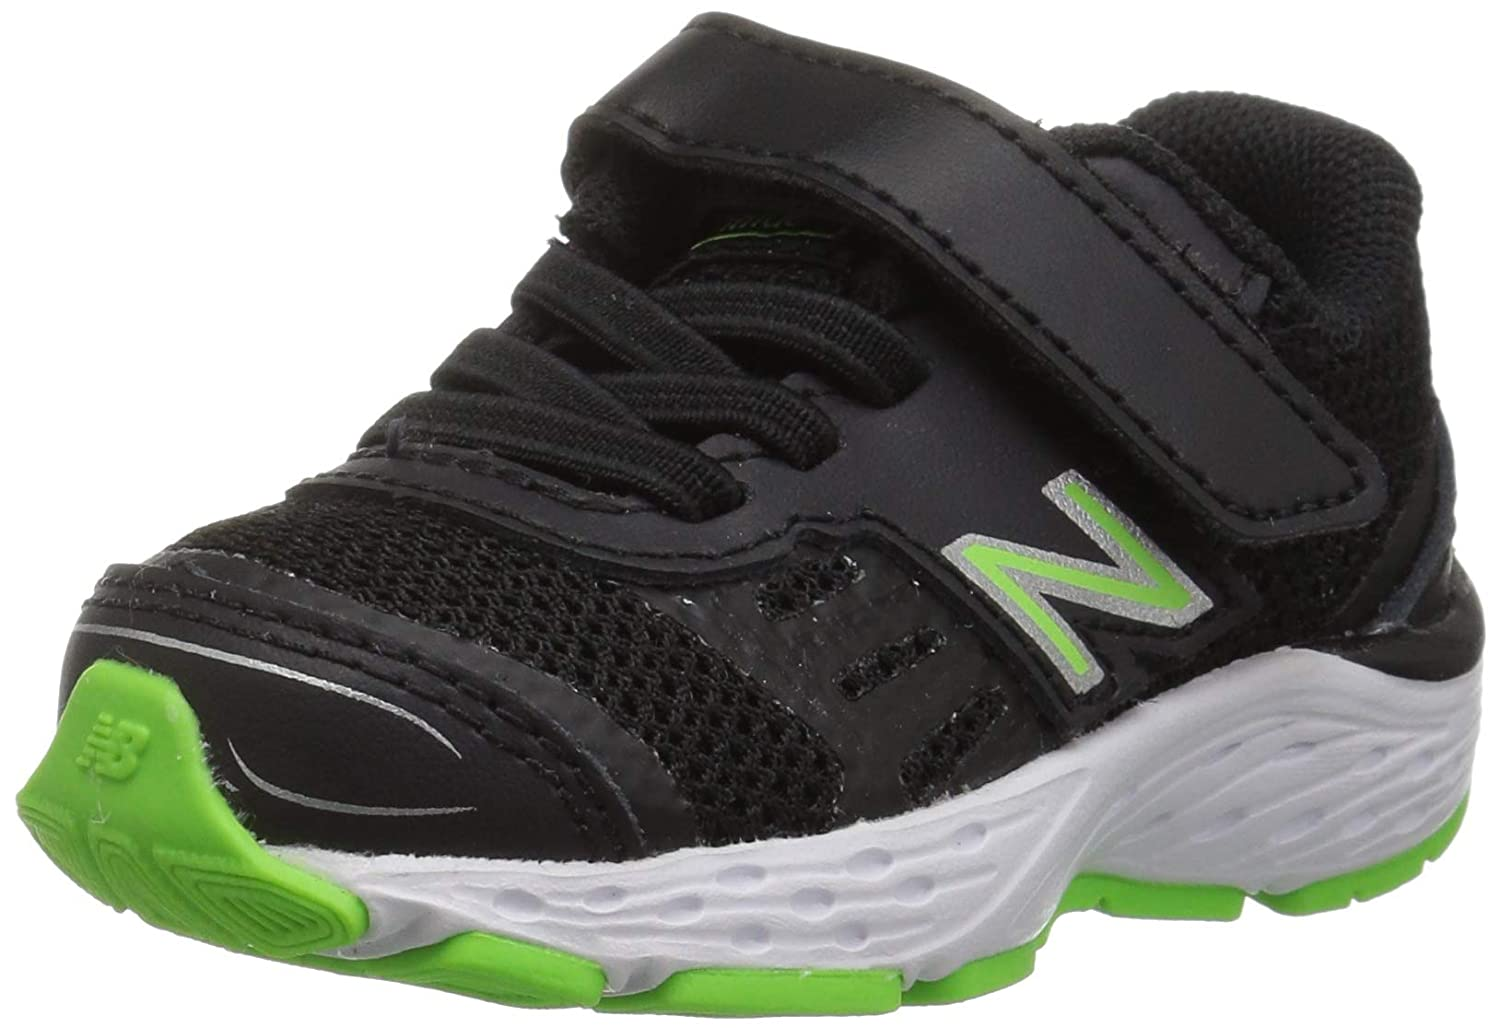 日本初の [ニューバランス] ユニセックスキッズ NB19-IA680AG-Infant 幼児(1~4才) Girls B07BQV74MJ M Black/Rbg Green 幼児(1~4才) US 幼児(1~4才)|Black/Rbg Green|5 M US Toddler, ハーブティーBrassica:8dfd7bb3 --- mfphoto.ie